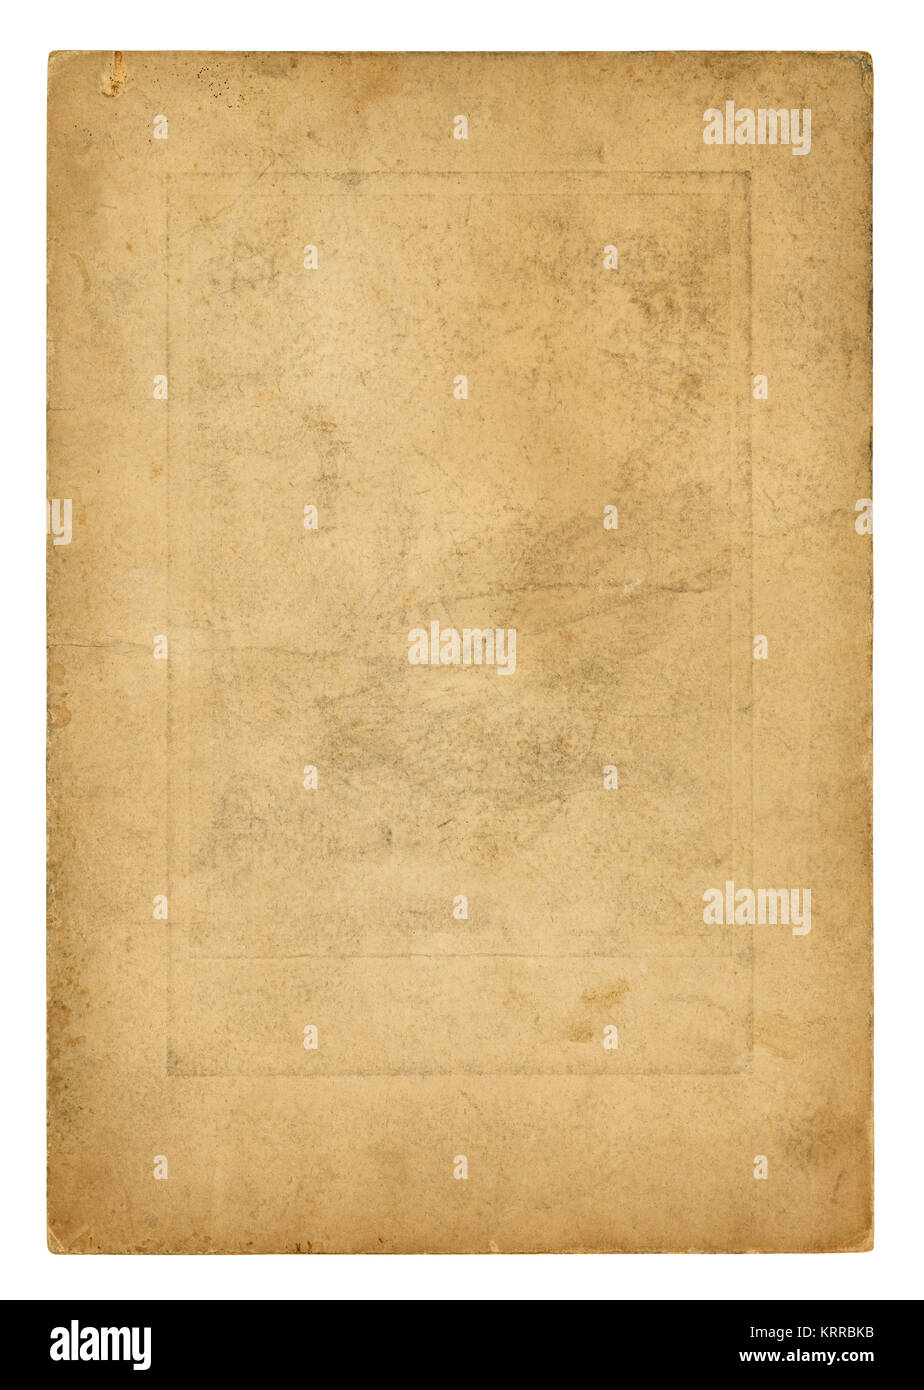 Vintage Photo paper - High resolution - Stock Image